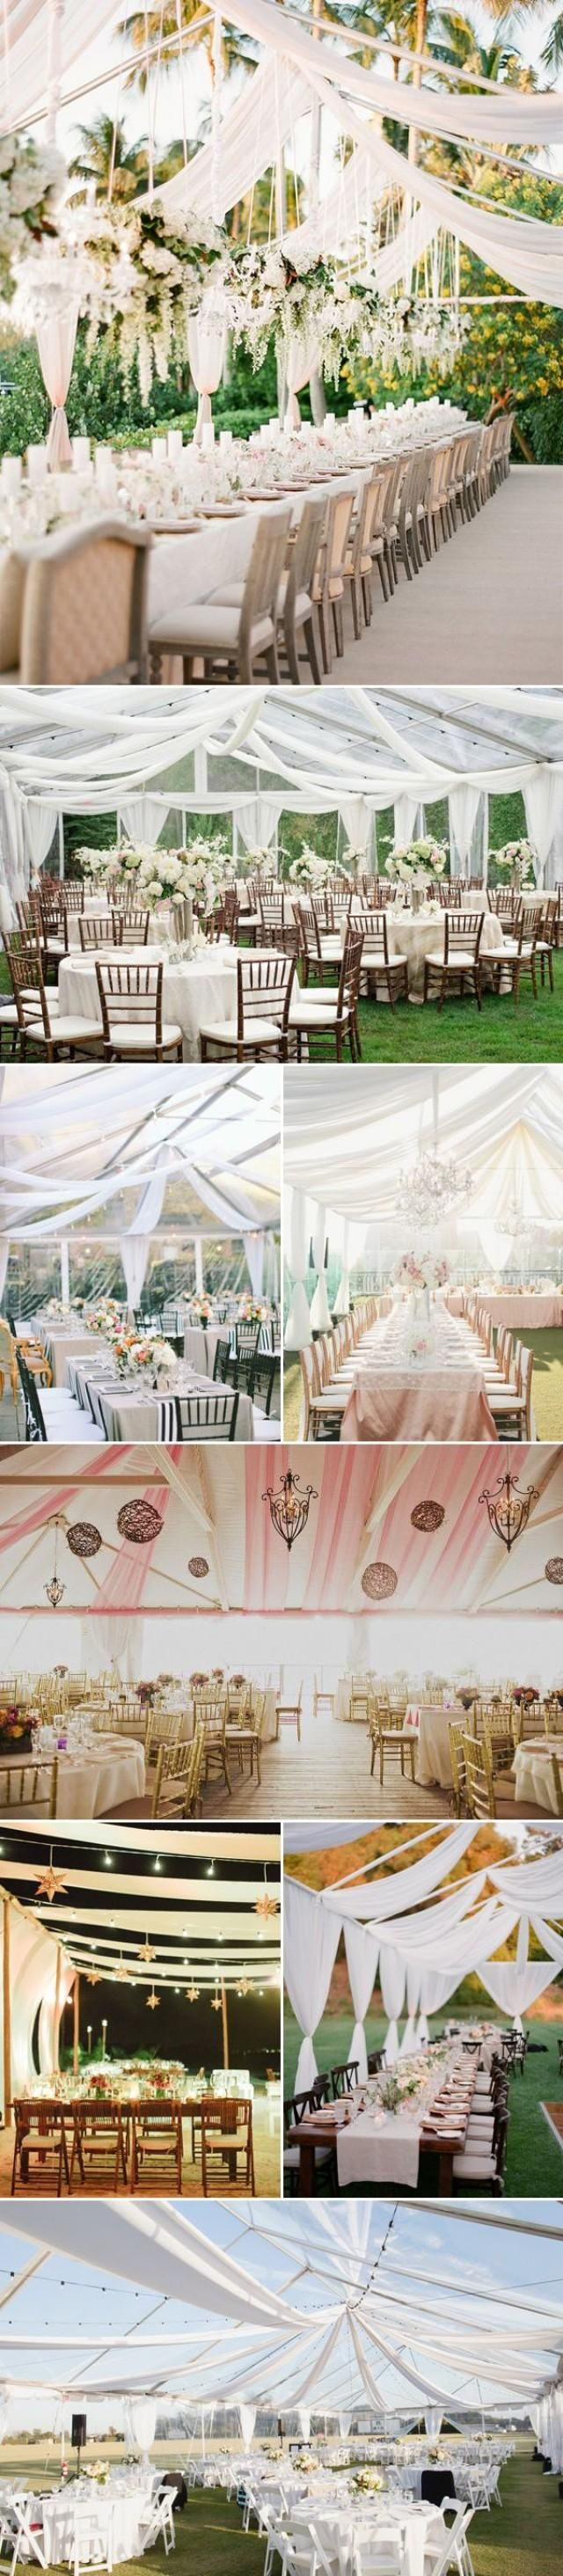 Weddbook is a content discovery engine mostly specialized on wedding concept. You can collect images, videos or articles you discovered  organize them, add your own ideas to your collections and share with other people - 40 Beautiful Ways to Decorate Your Wedding Tent - Draped Fabric #outdoor